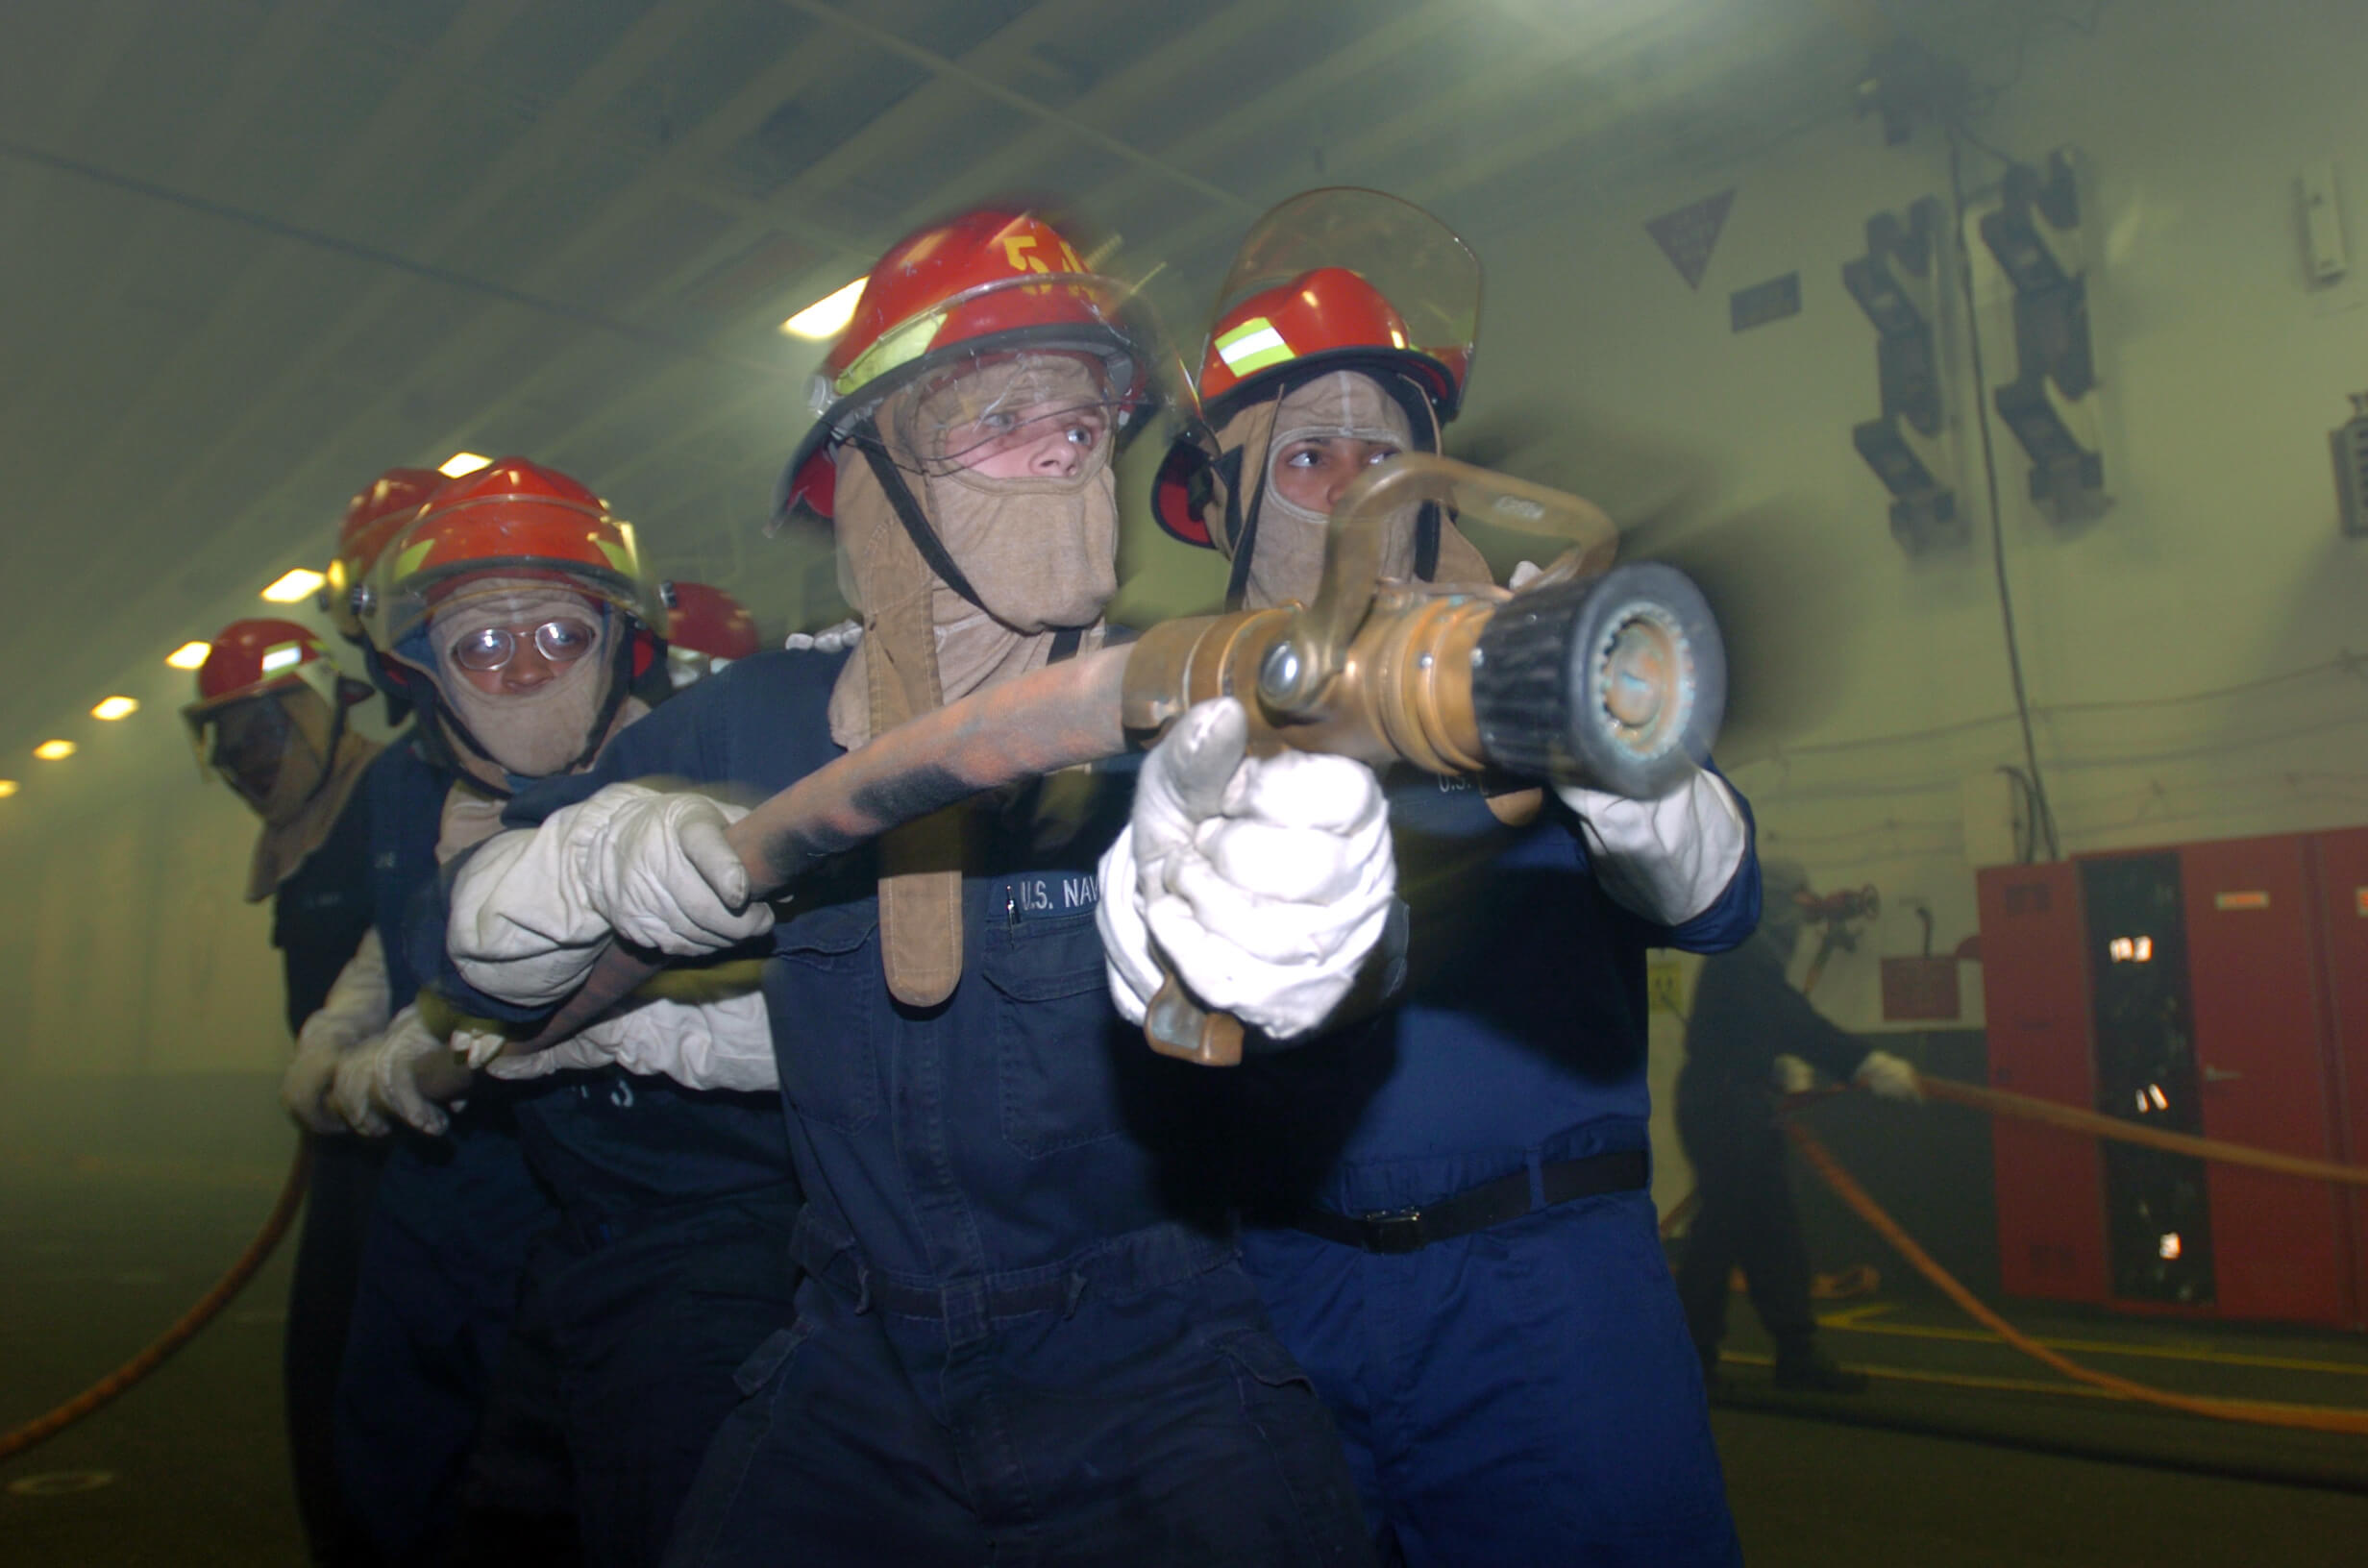 MCA approved STCW 2010 Advanced Fire Fighting